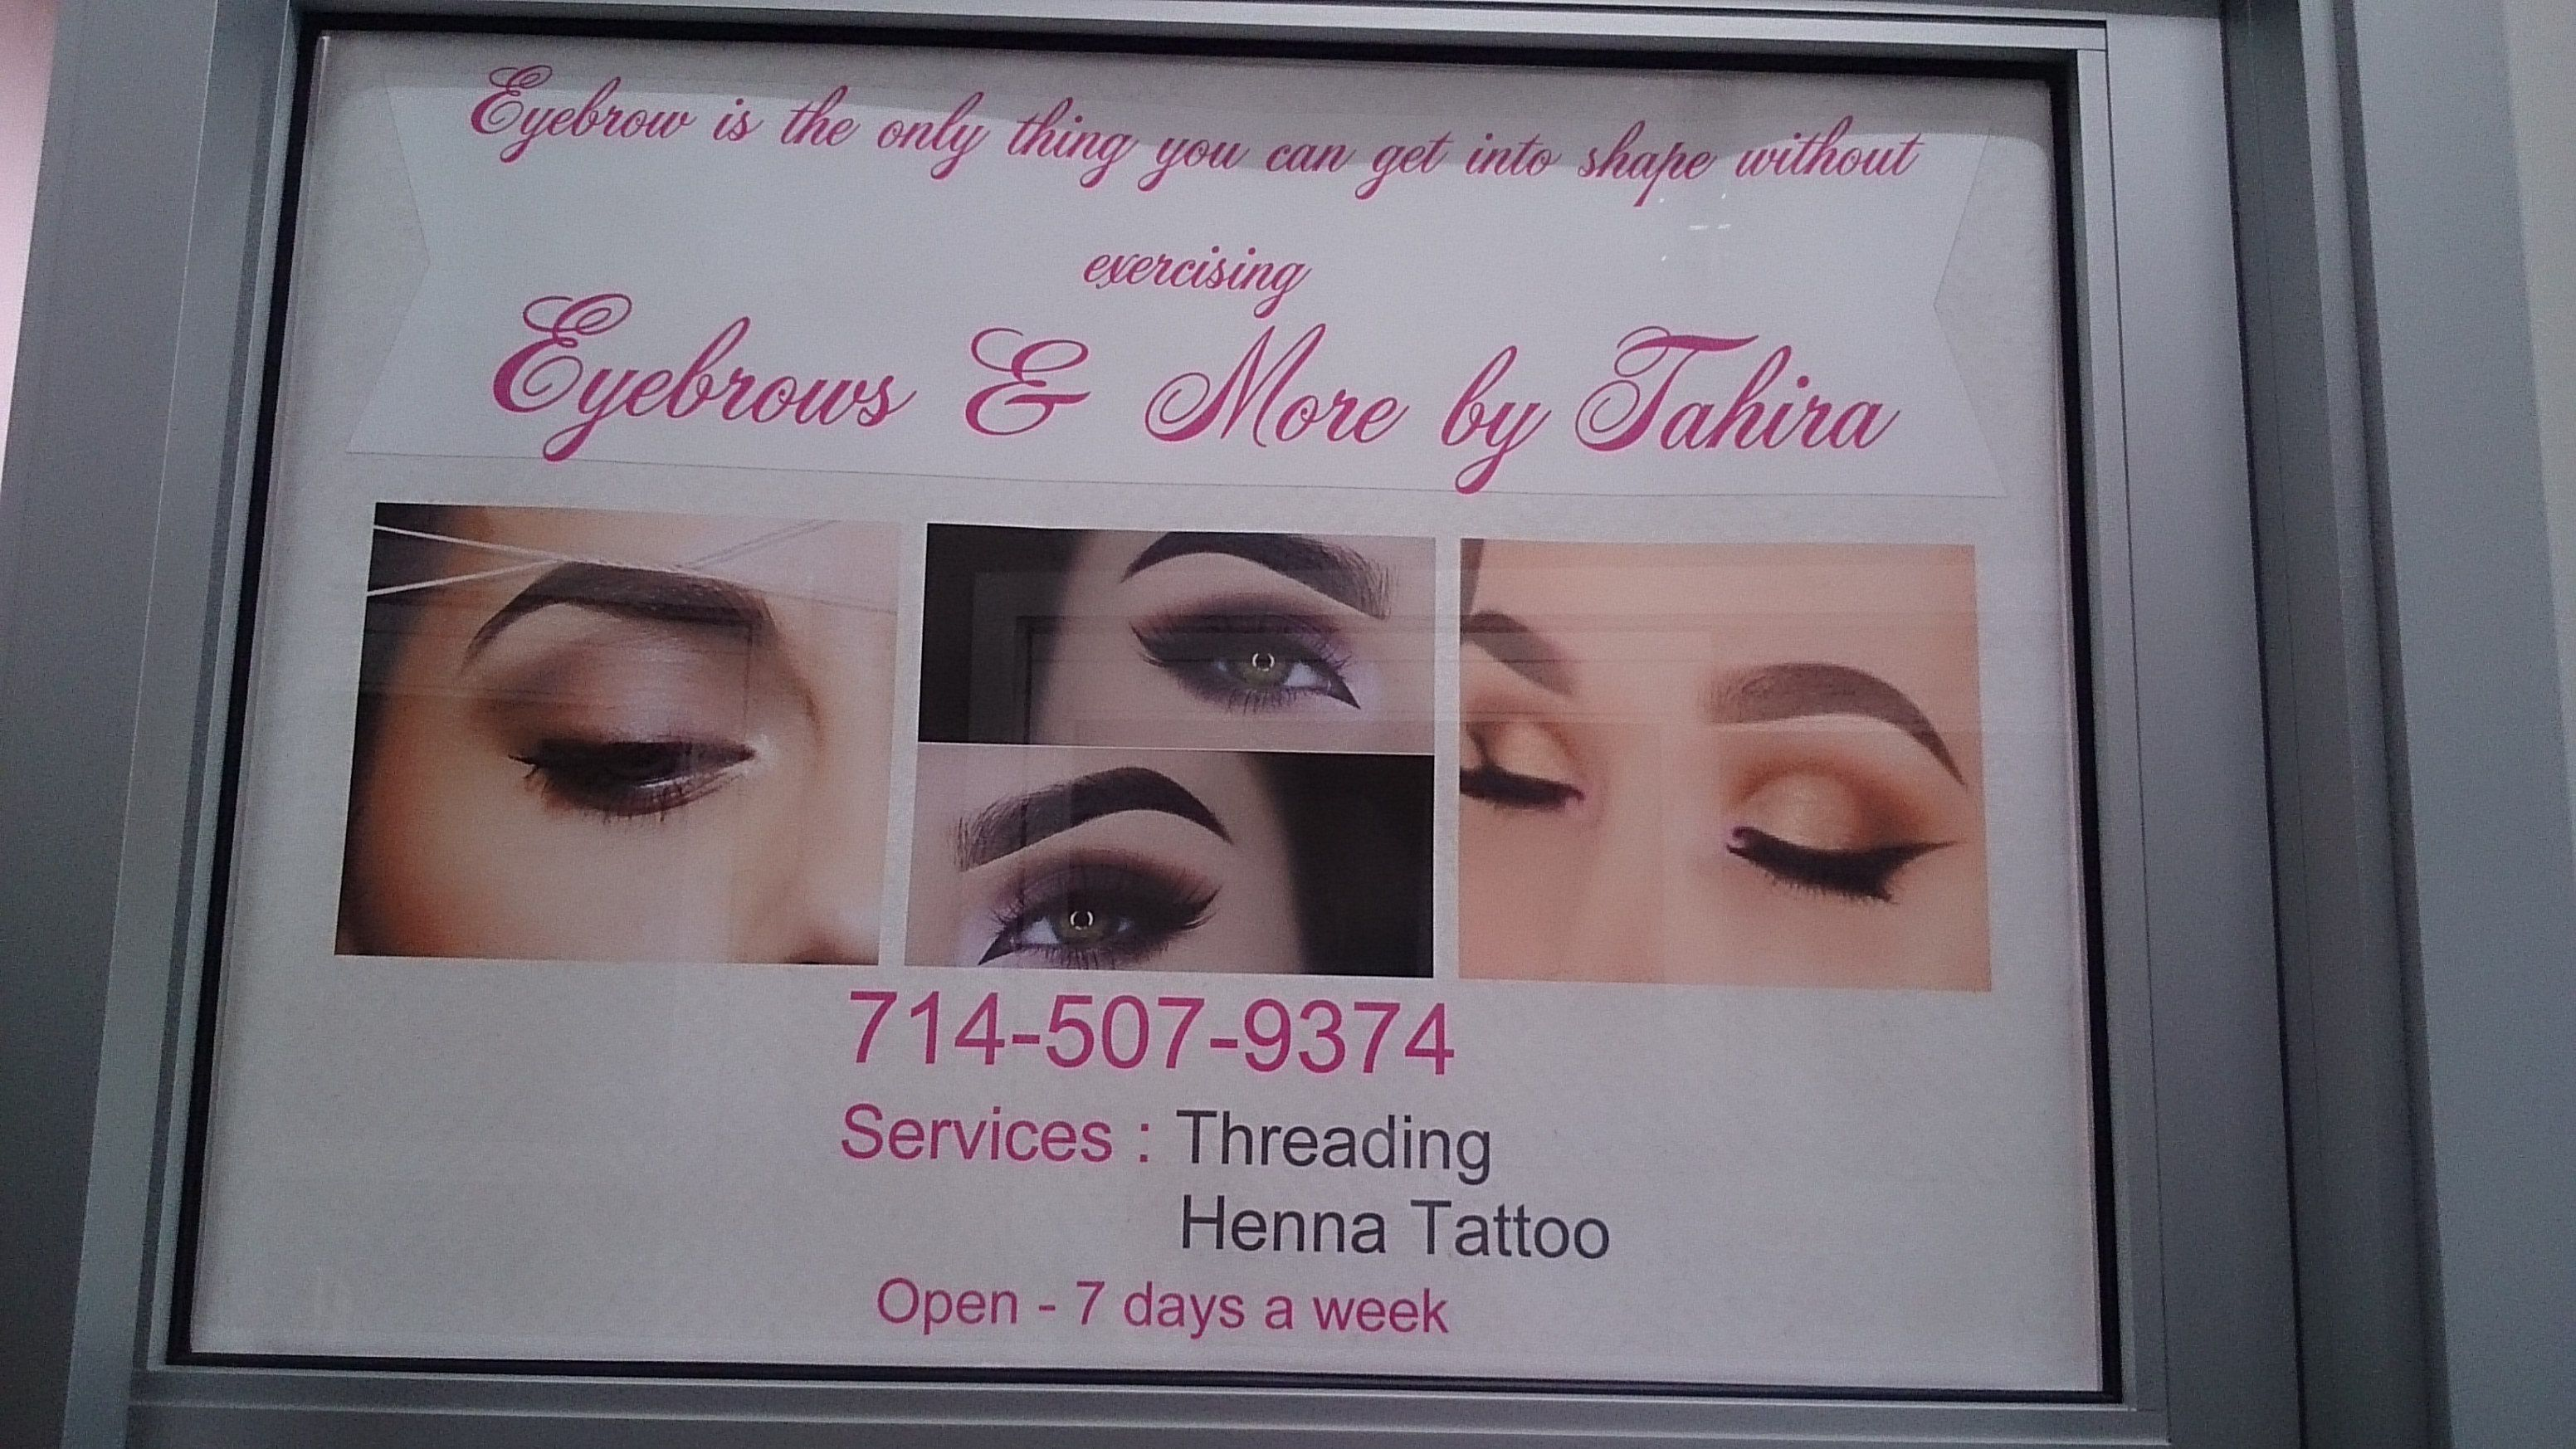 Pin by Eyebrows & More by Tahira on Eyebrows & More by